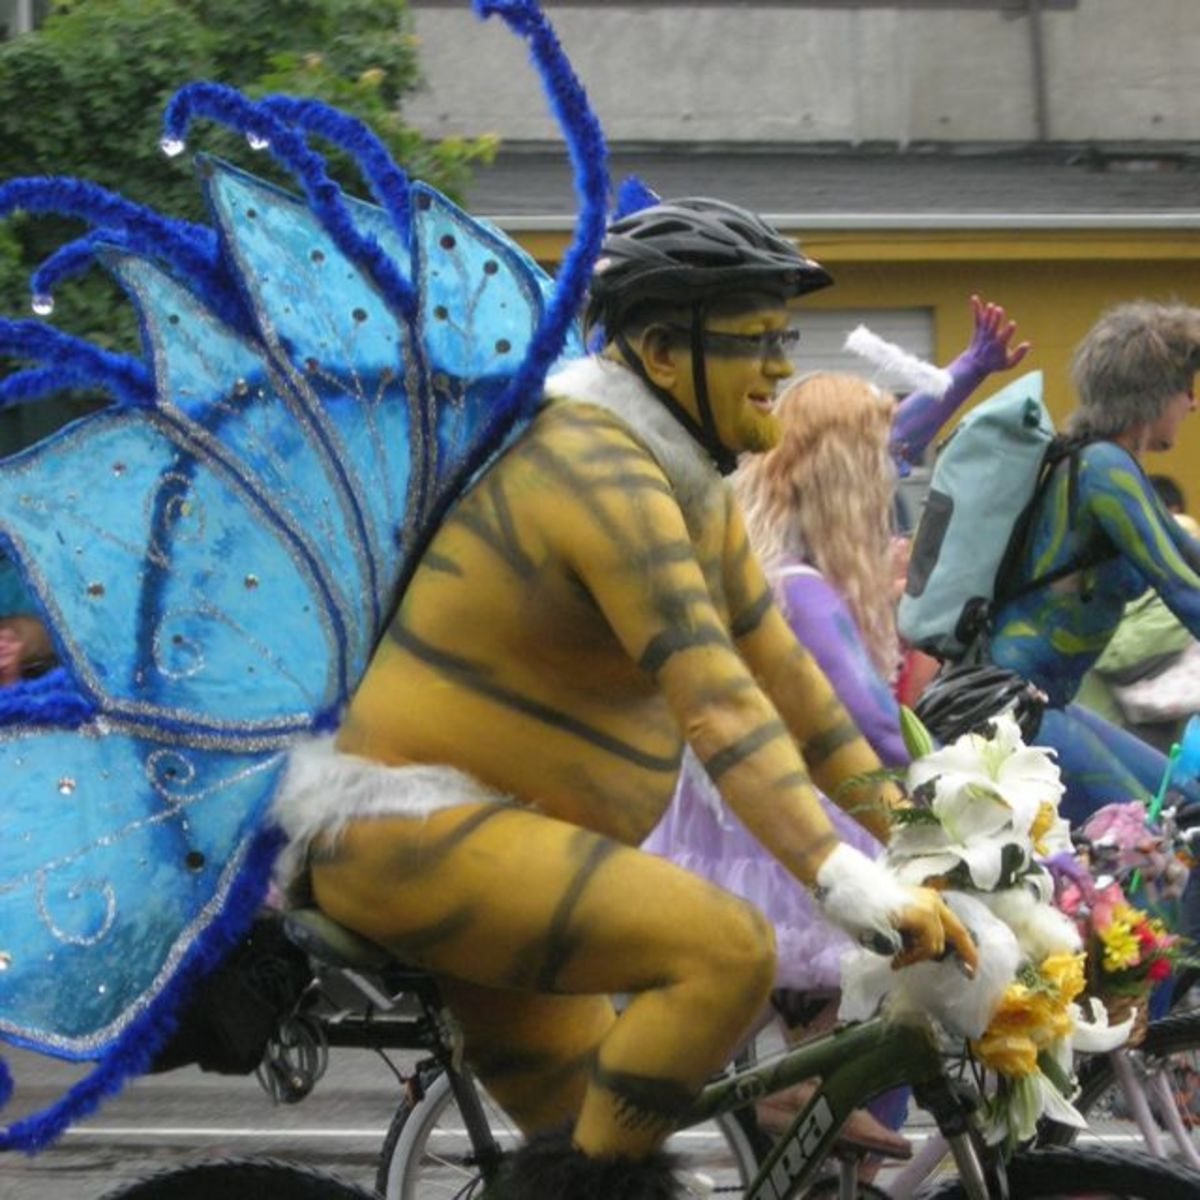 This bicycle rider has fantasy butterfly wings with fluffy trim.